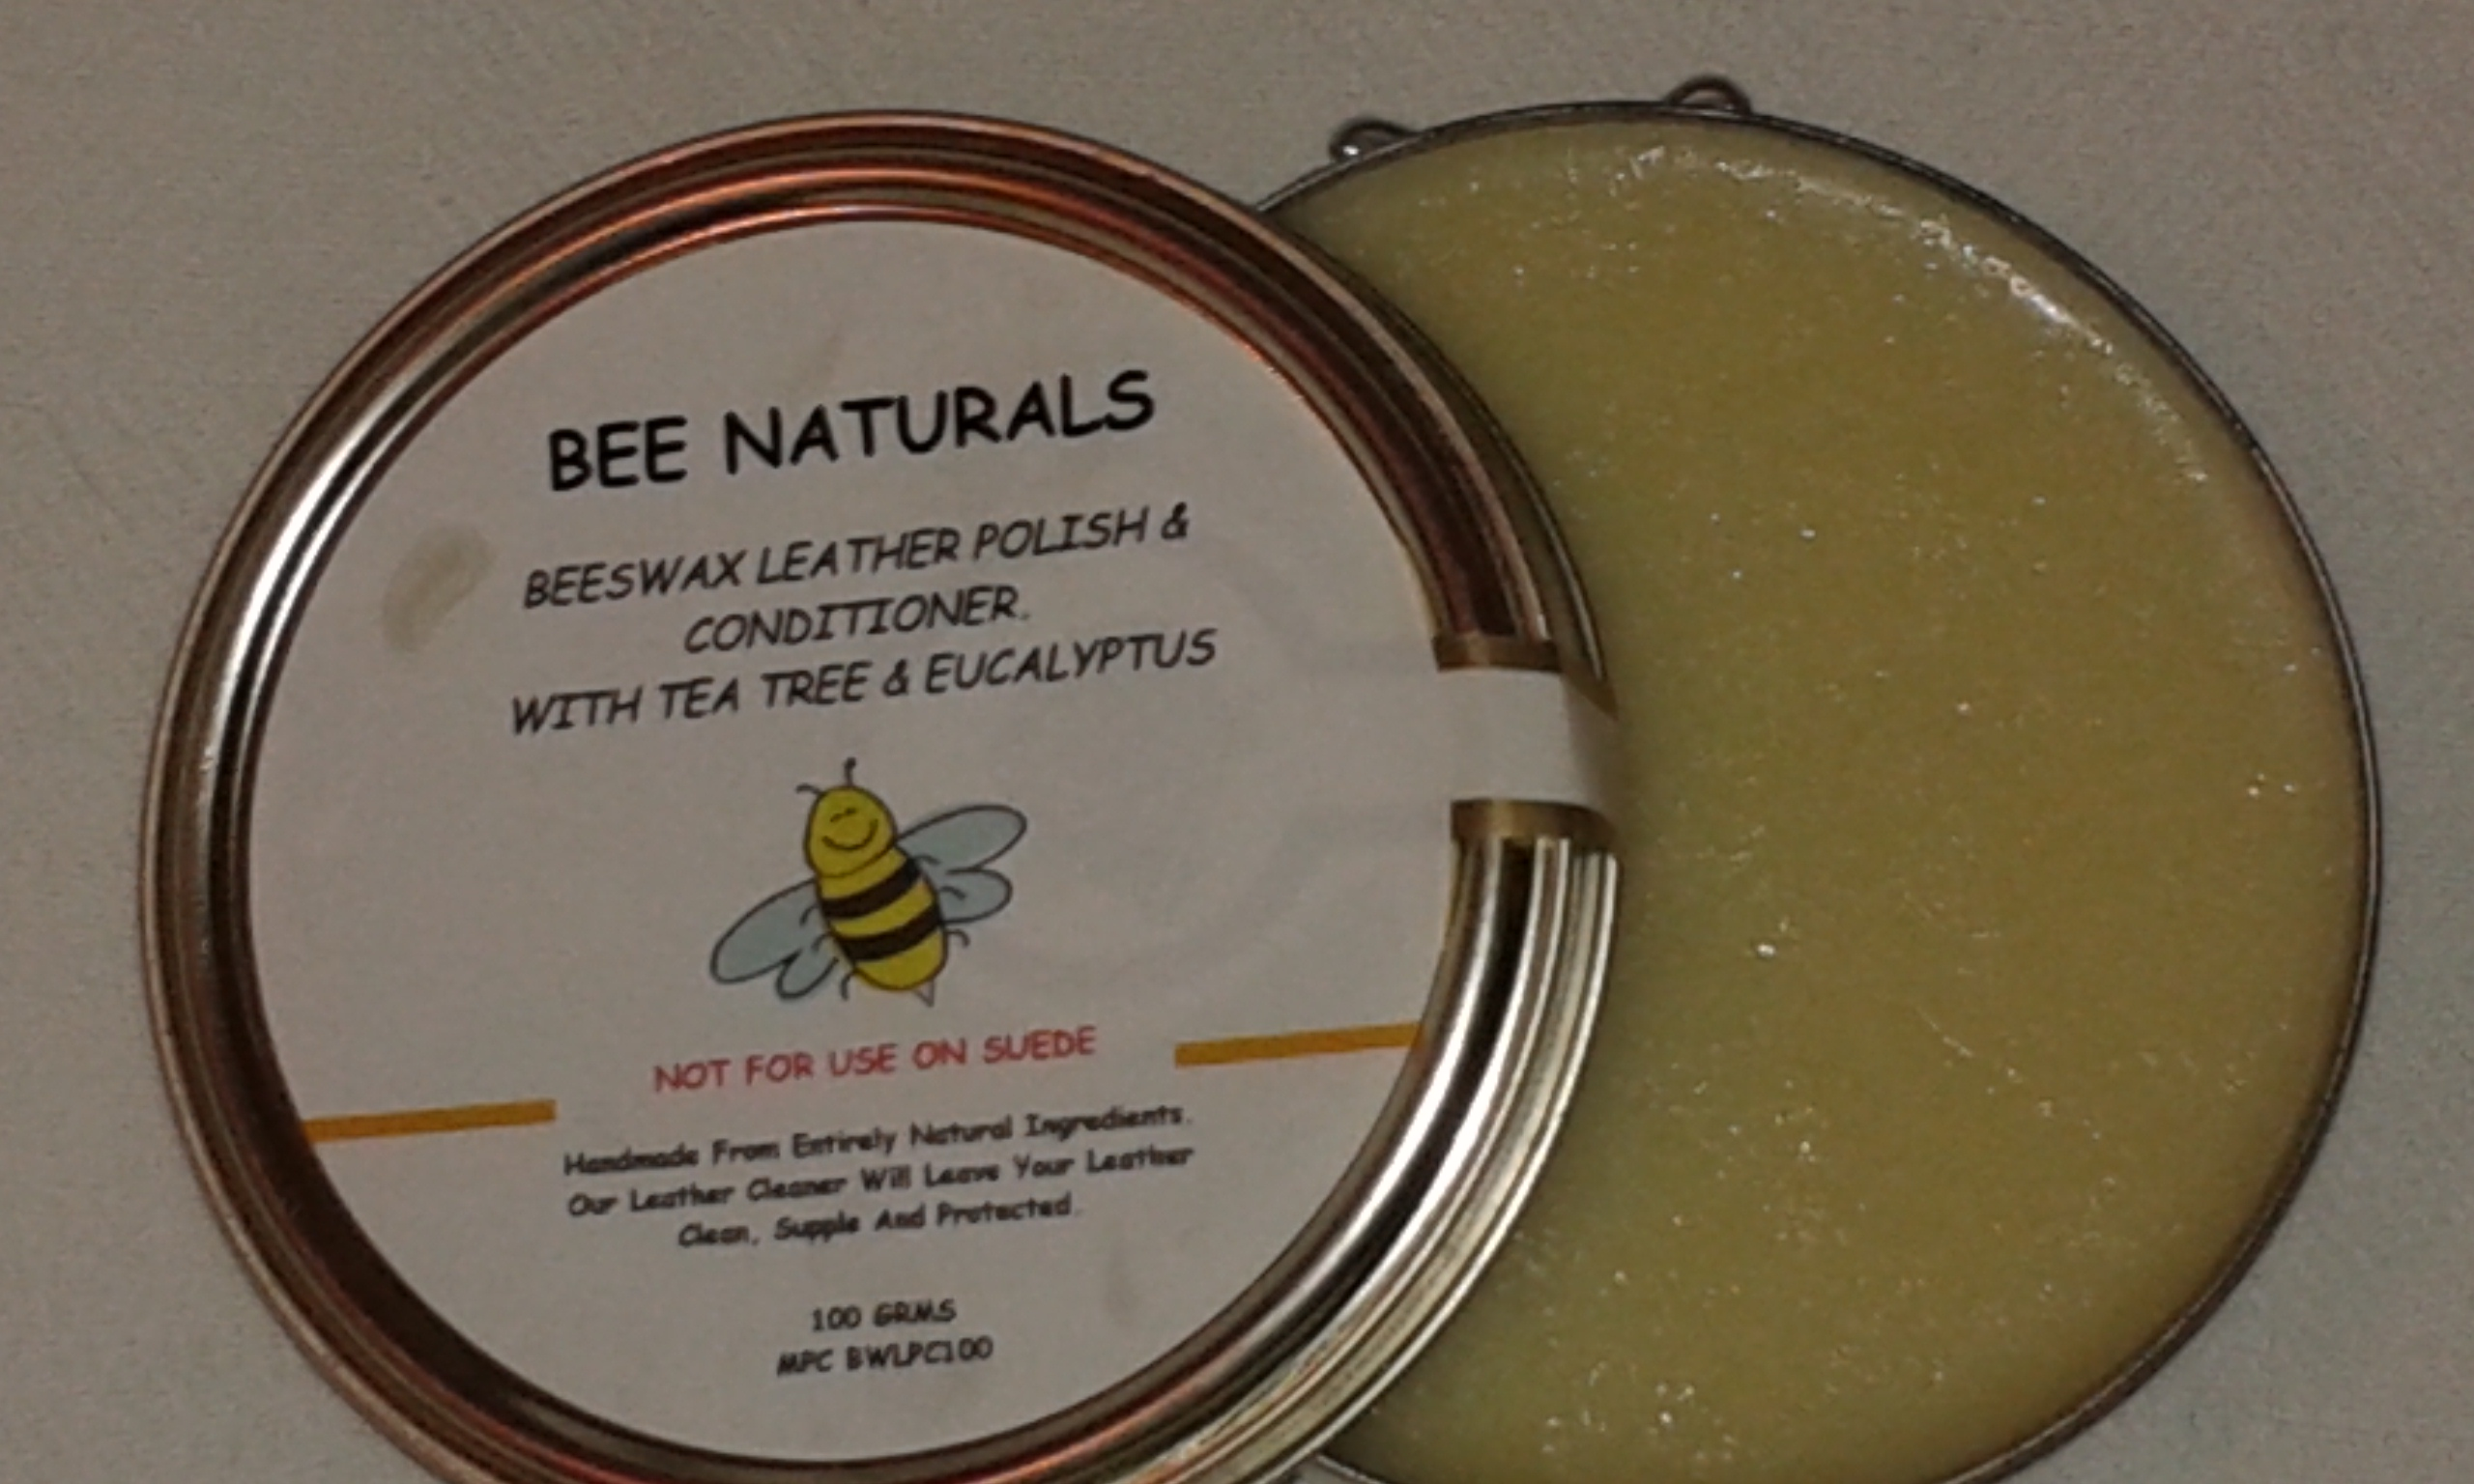 Handmade Natural Beeswax Leather Polish And Conditioner.